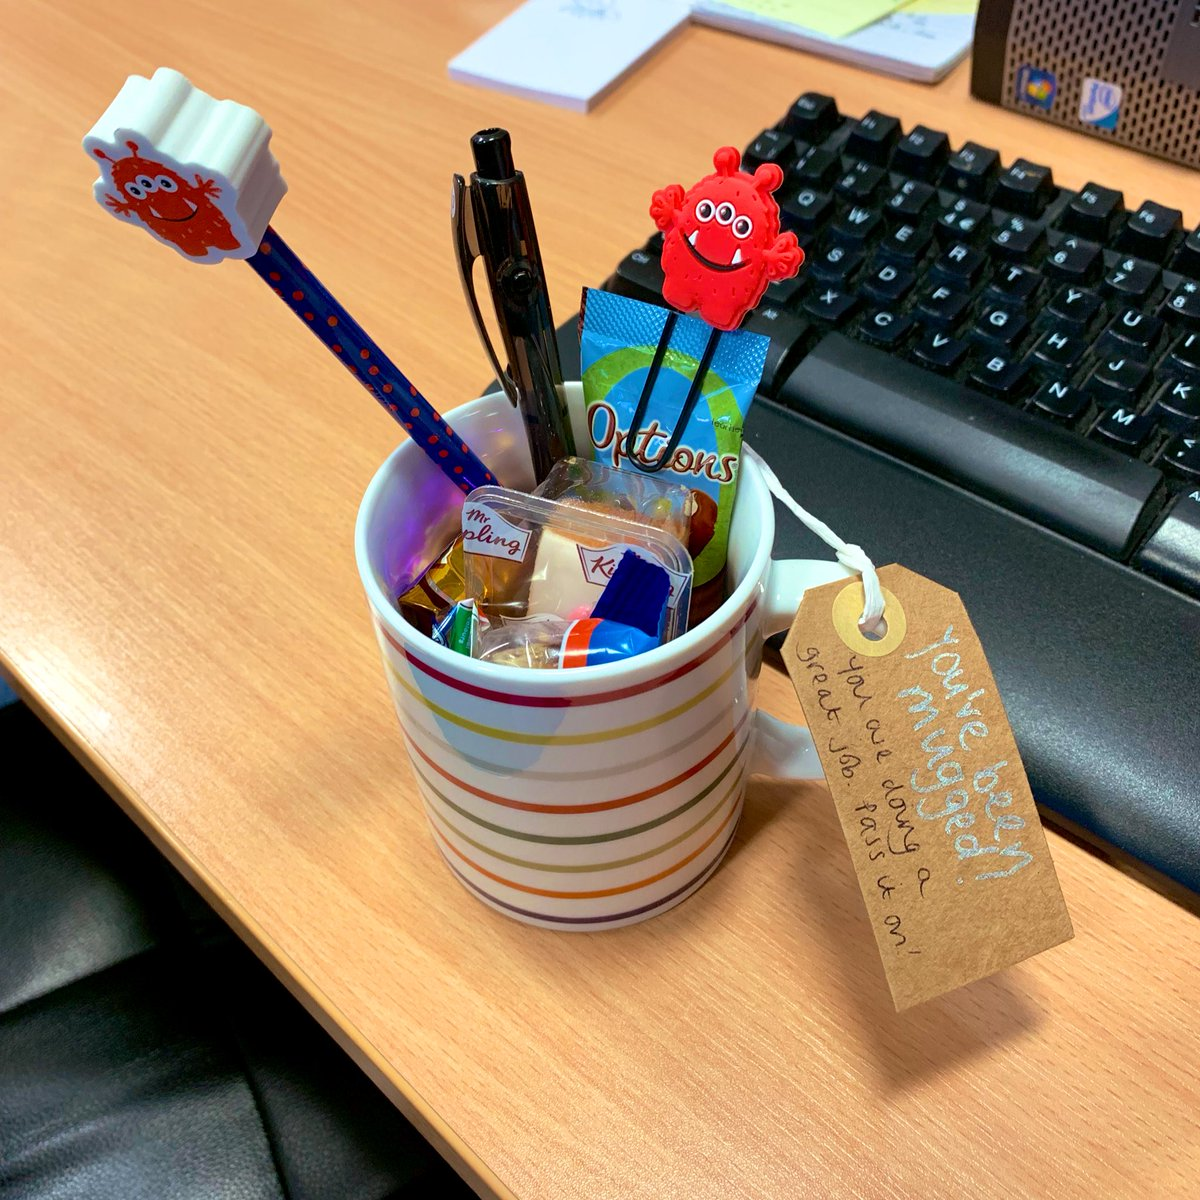 Came in to work this morning to find I'd been #mugged What a lovely positive way to start the day! Thank you to whoever did this! @UHSFT @NeonatalMatron @SONeTWessex #PayItForward <br>http://pic.twitter.com/4BWY8SKNkX